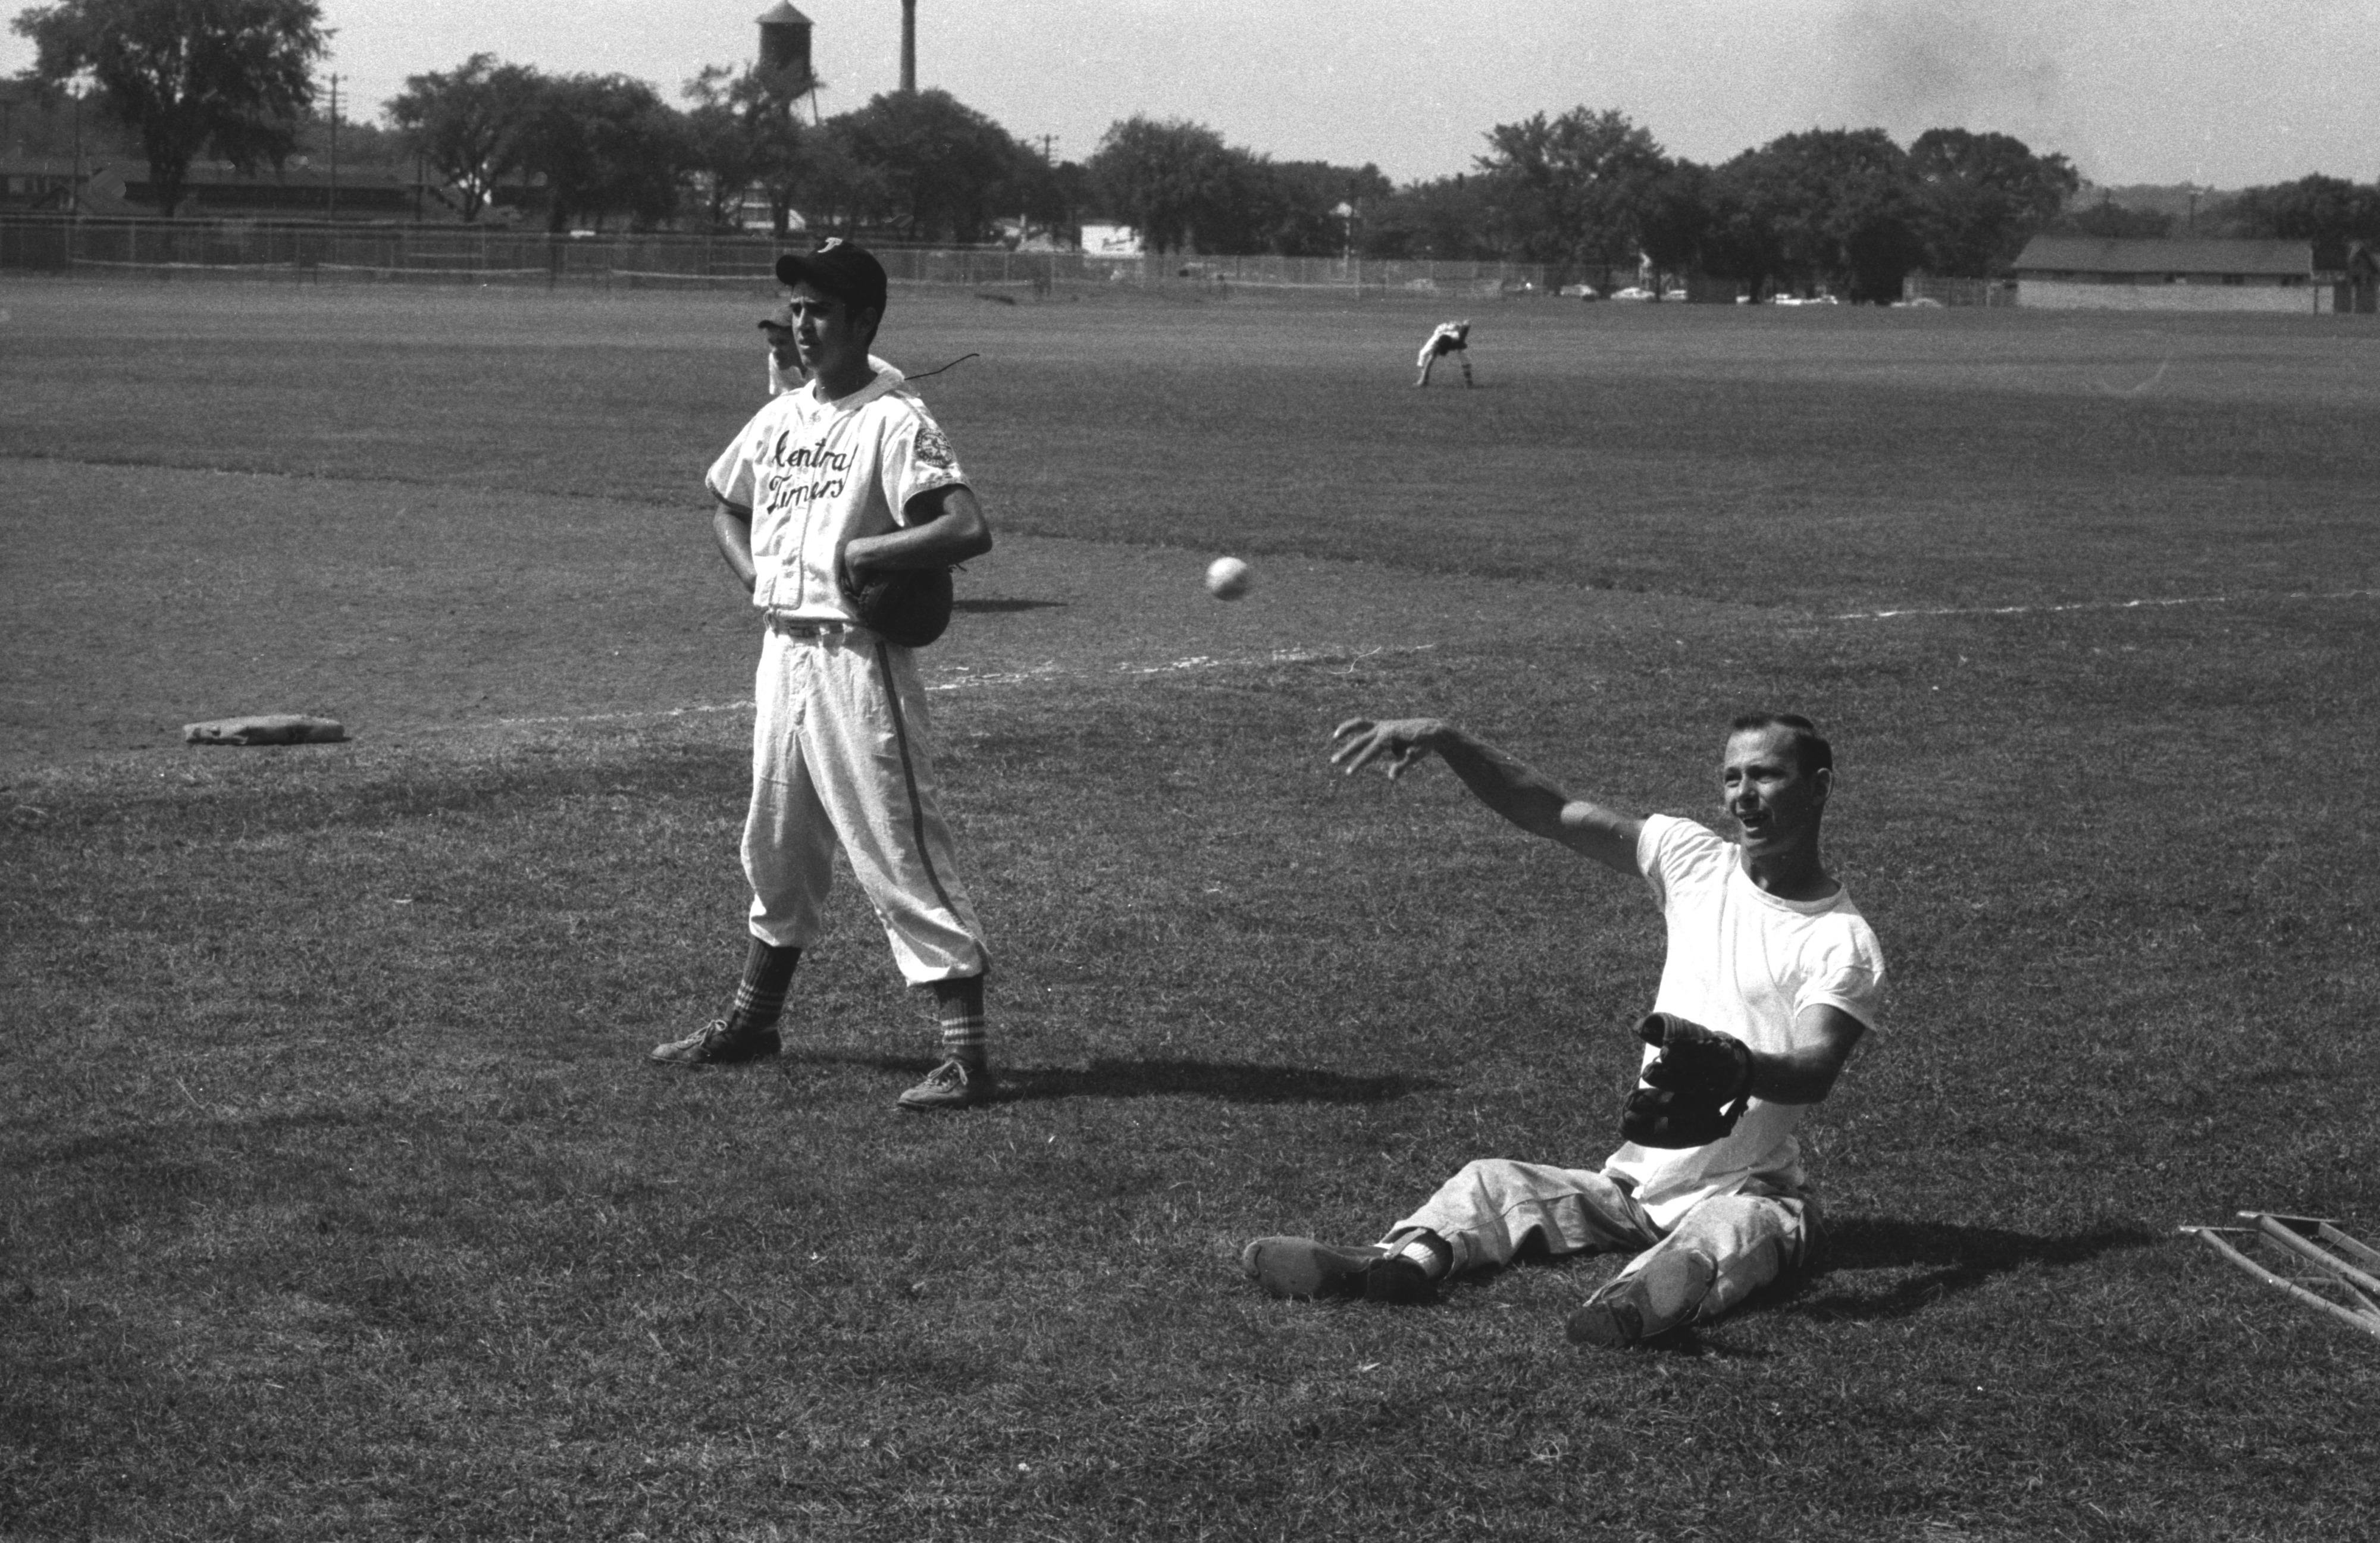 Don Hasselbusch, Polio Victim, Plays & Coaches Baseball For The Babe Ruth League World Series At Michigan Stadium, August 20, 1957 image